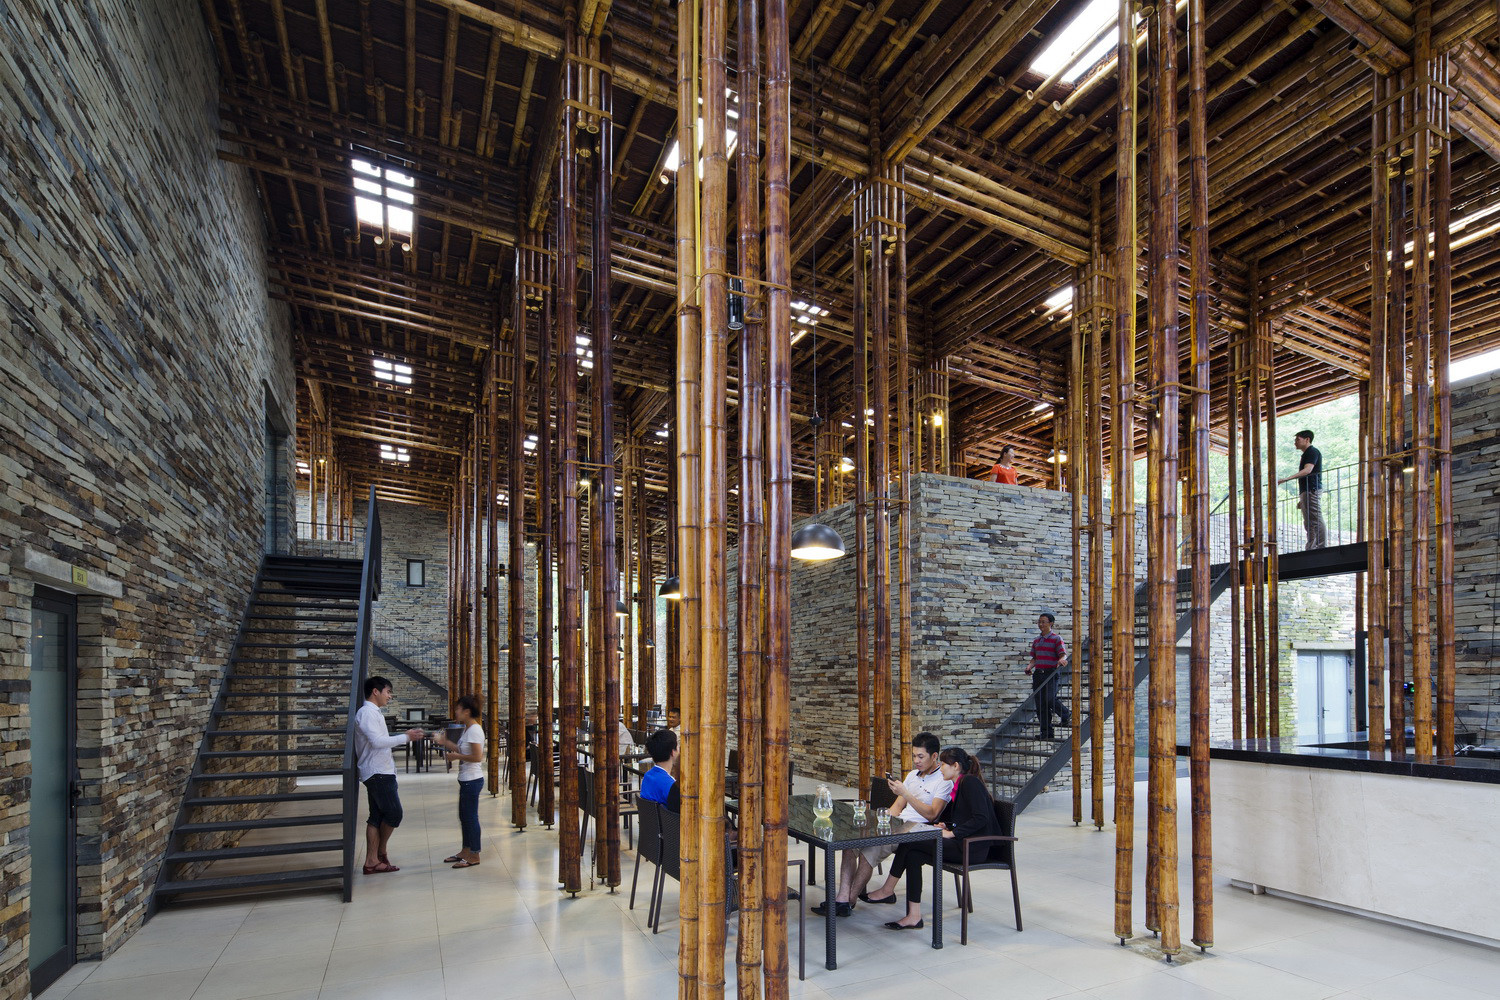 10 inspiring spaces with bamboo ceilings - kirei usa